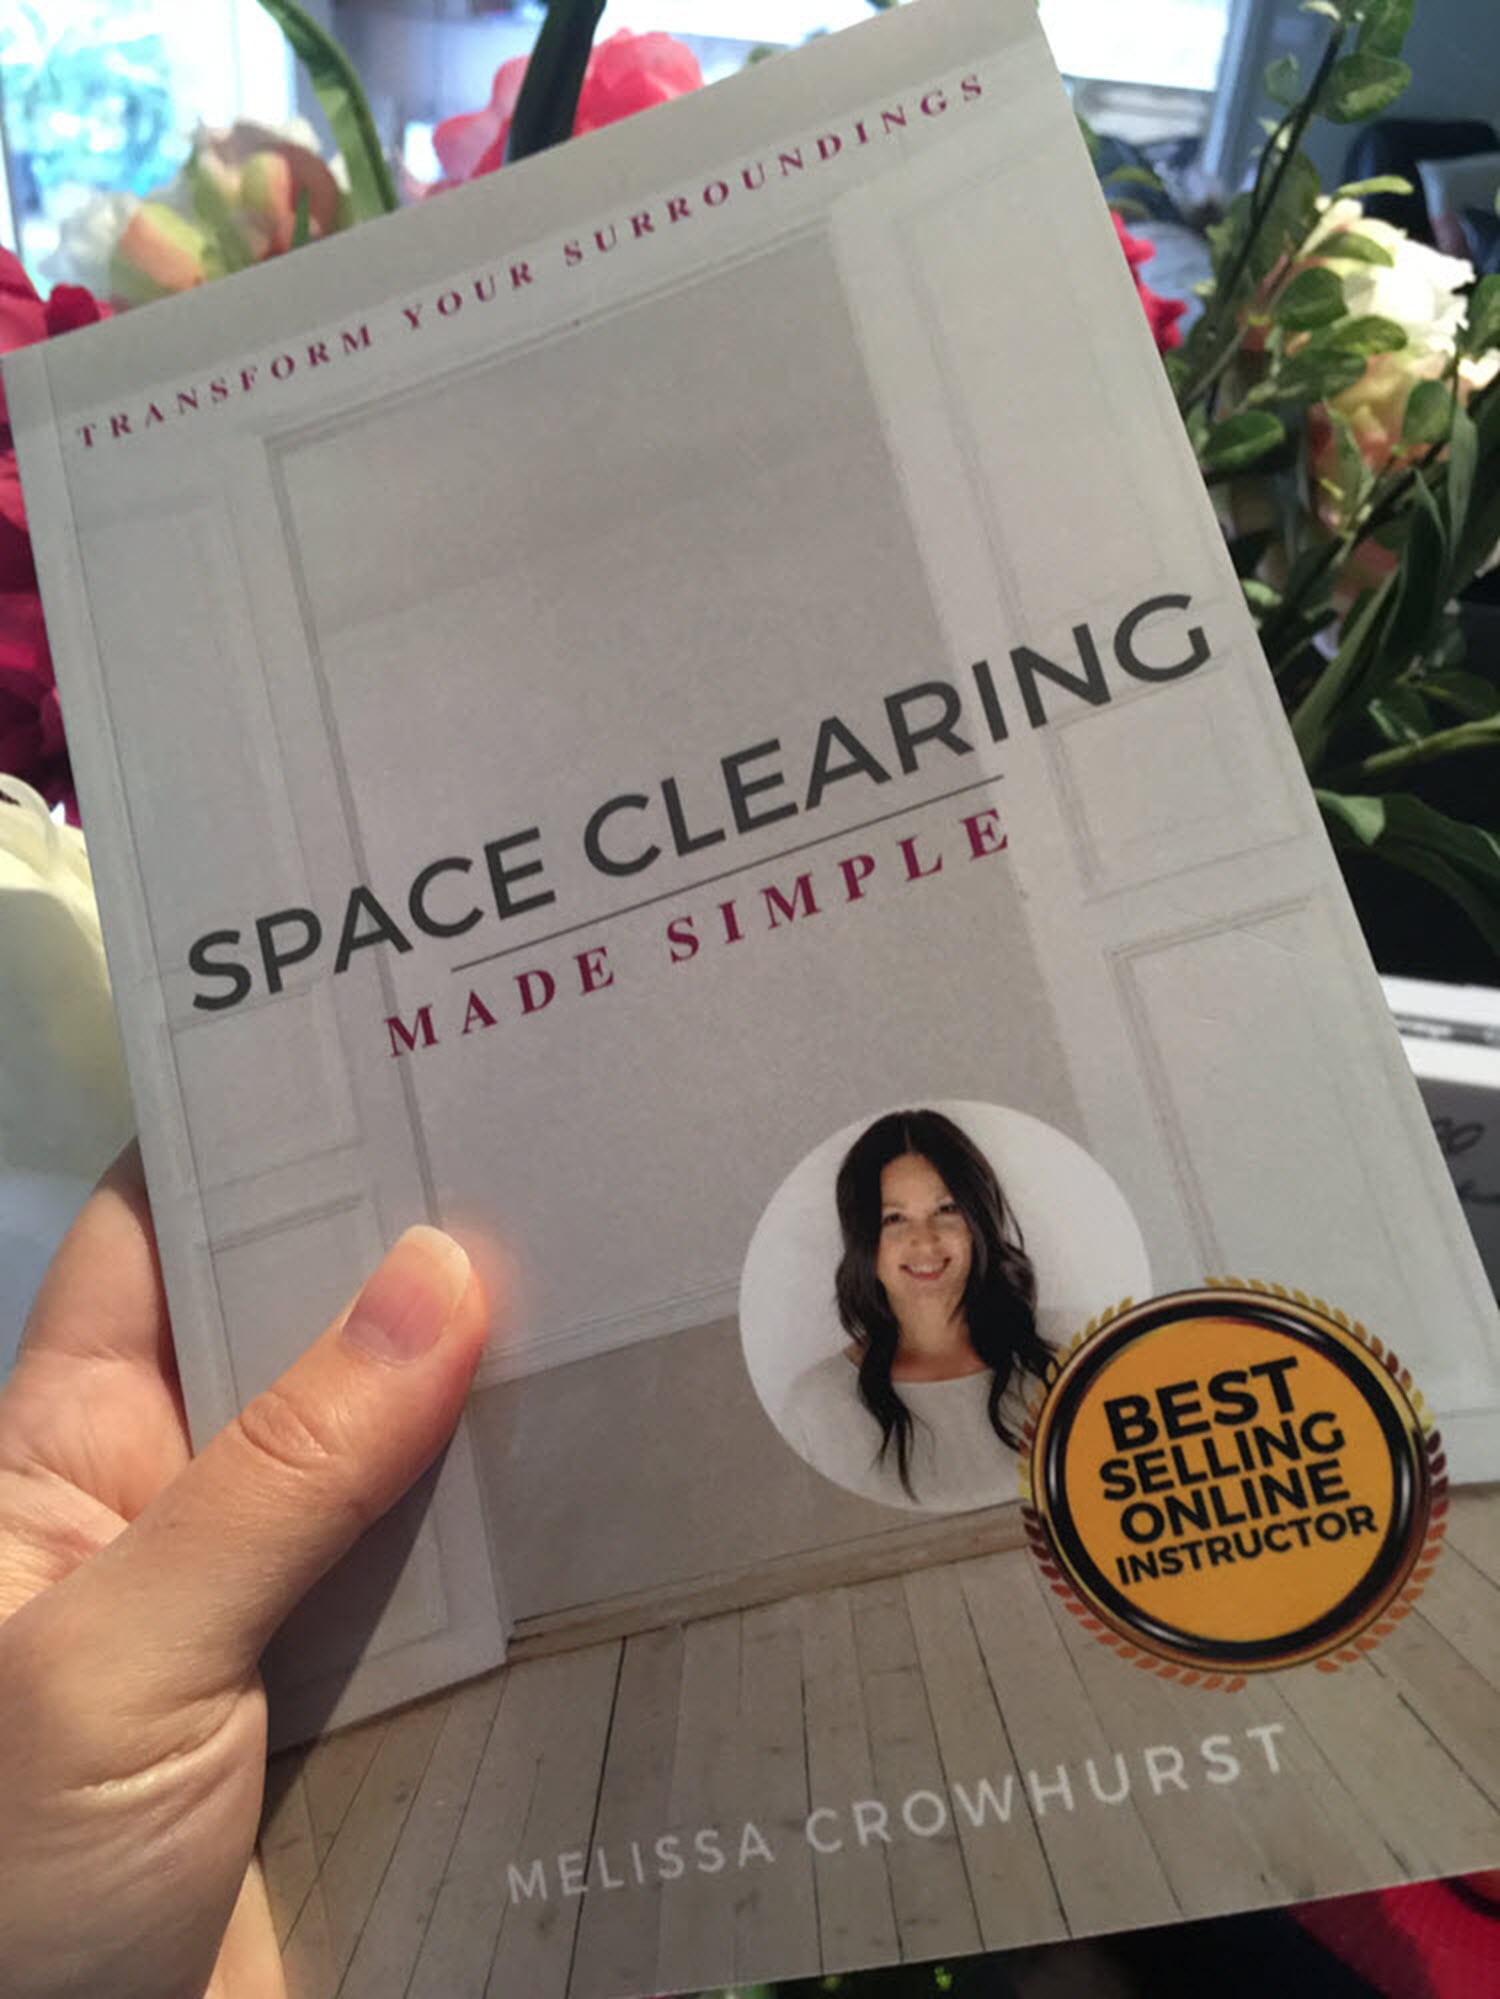 Space Clearing Made Simple Book (Signed)